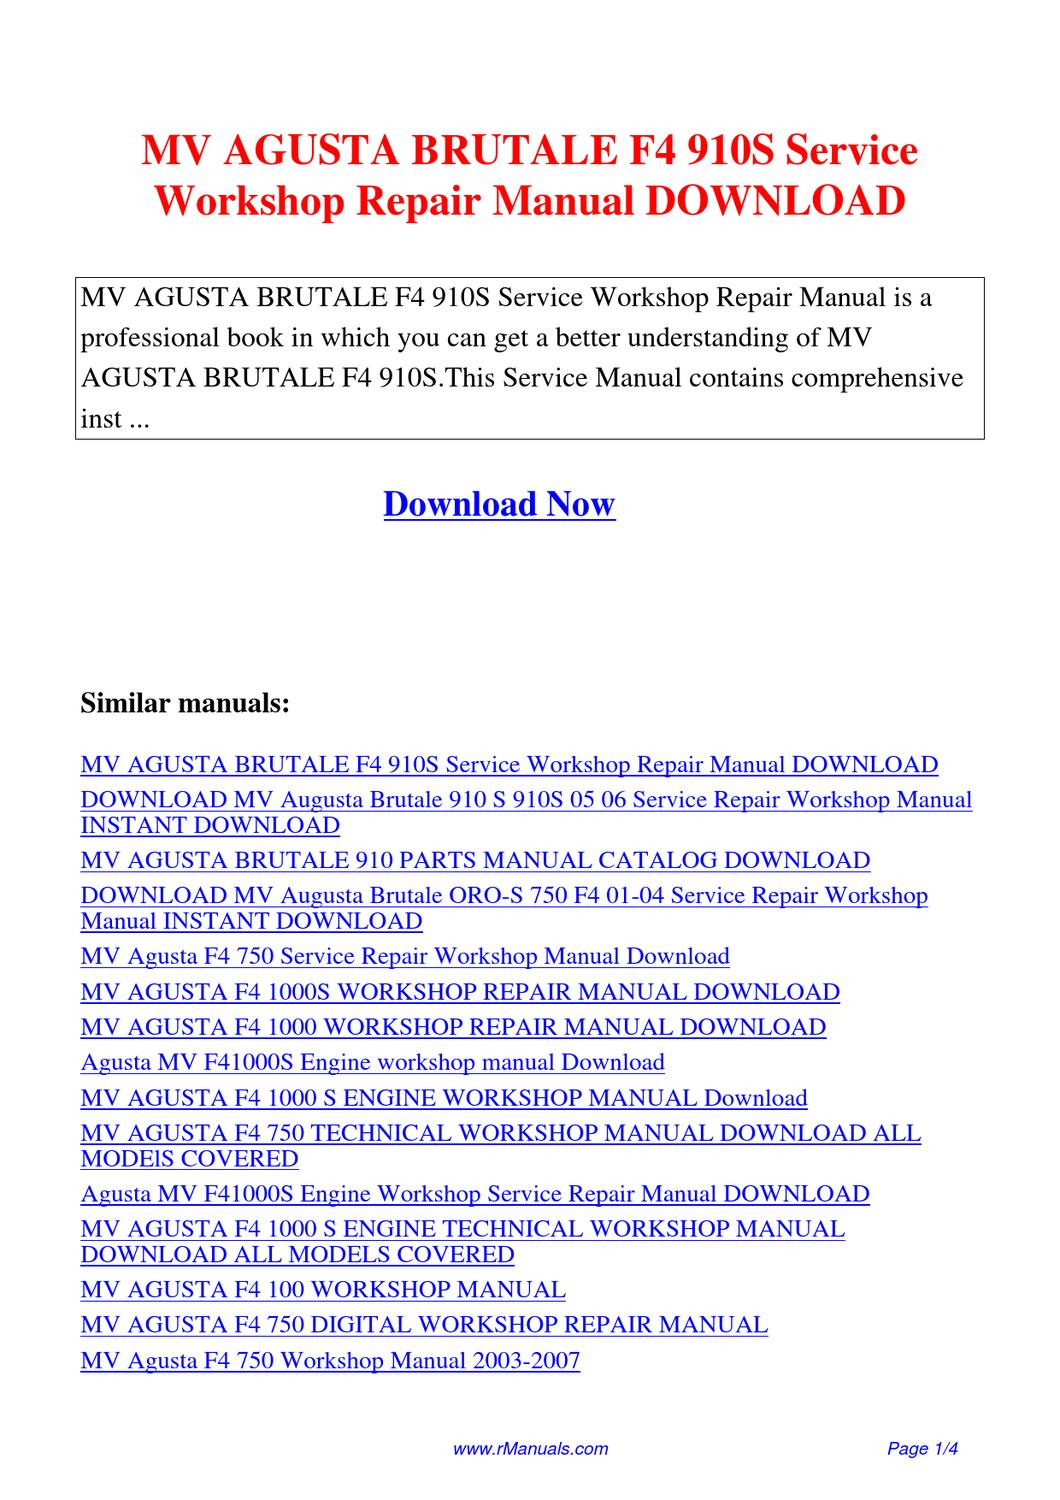 MV AGUSTA BRUTALE F4 910S Service Workshop Repair Manual.pdf by David Zhang  - issuu